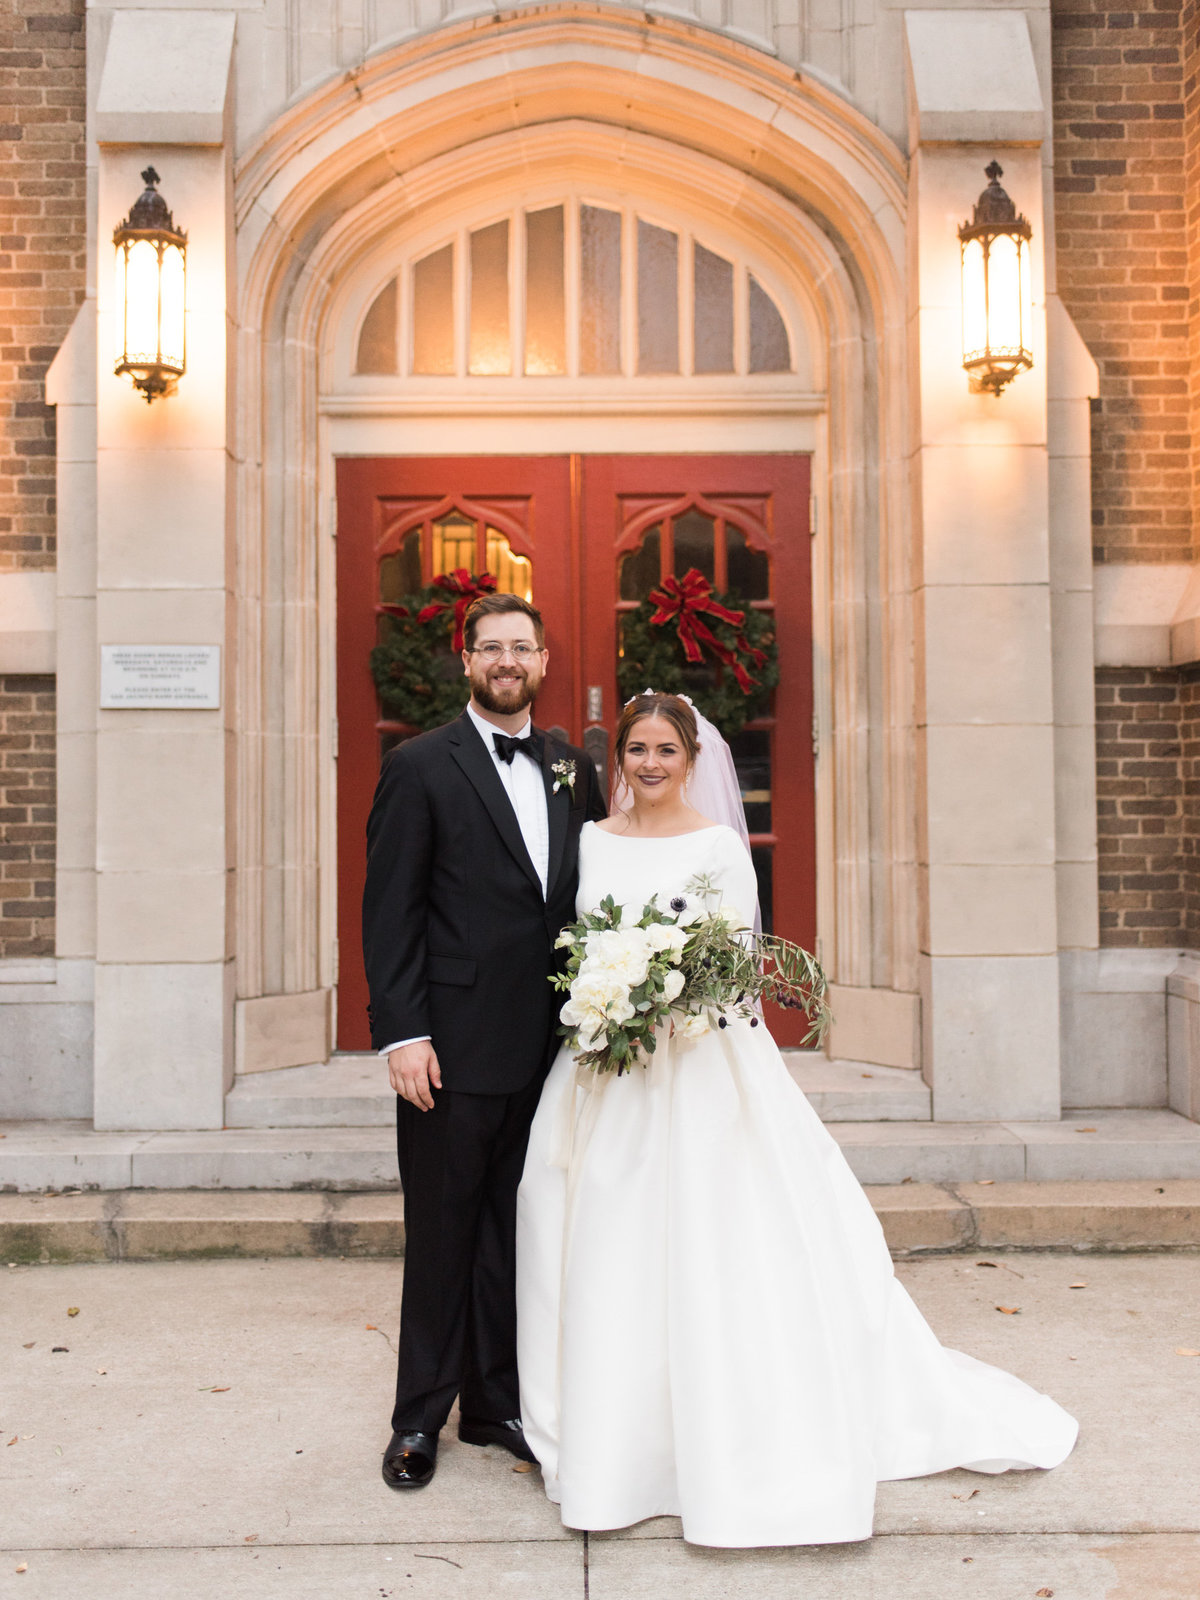 Courtney Hanson Photography - Festive Holiday Wedding in Dallas at Hickory Street Annex-0229